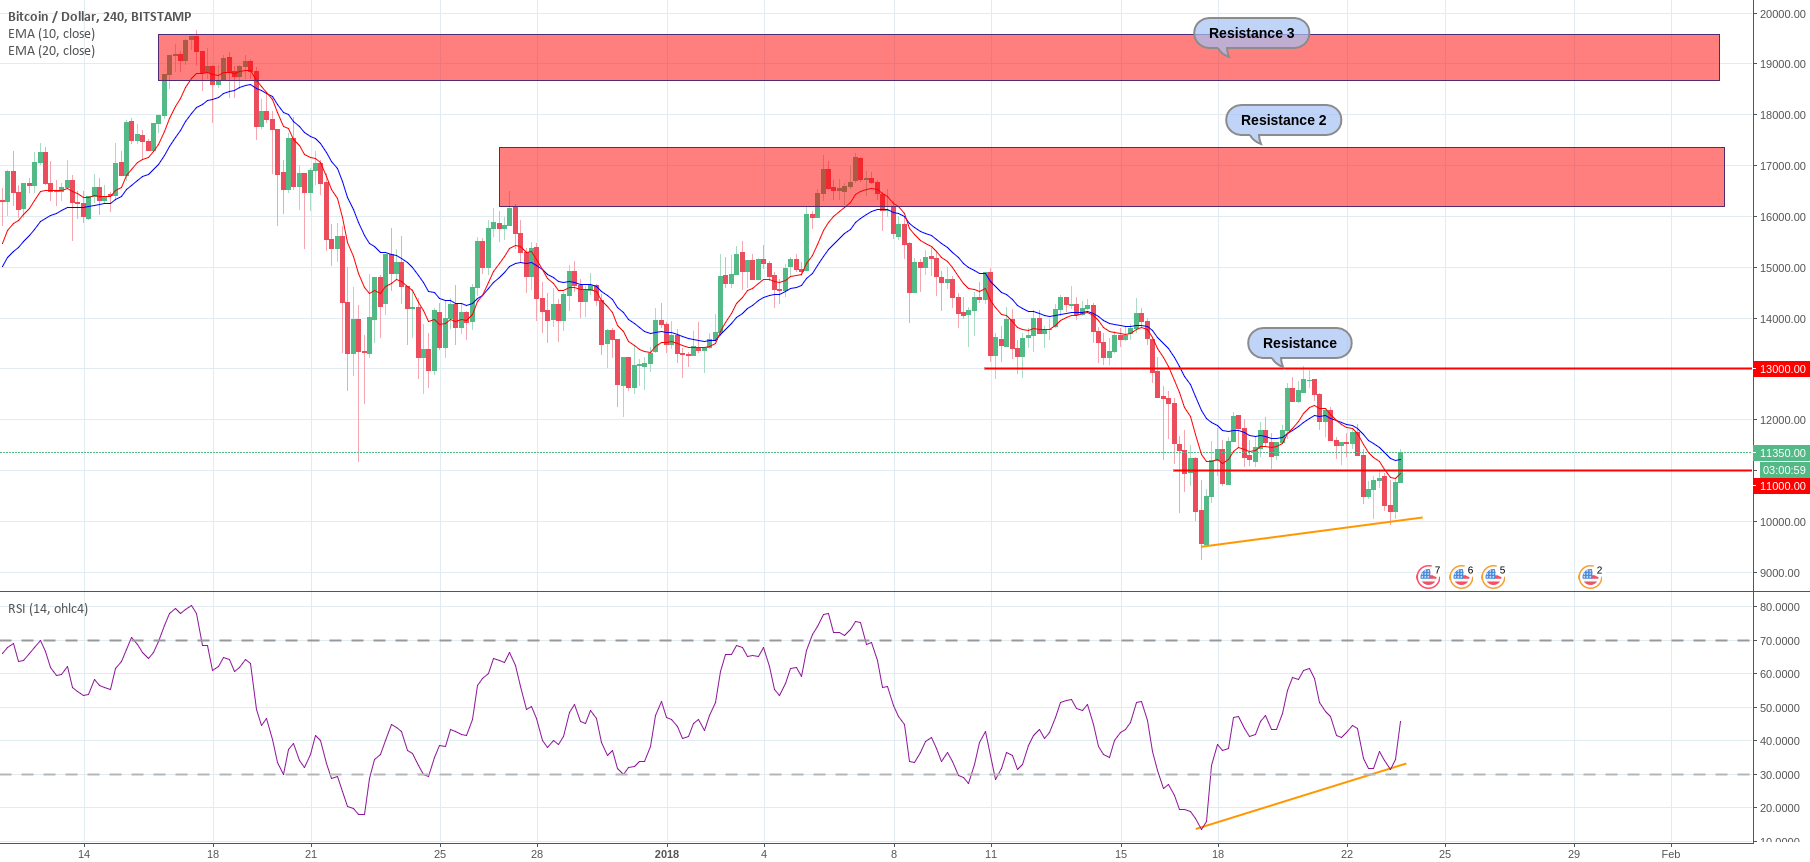 BTC some buying opportunities in the lows. RSI divergence.